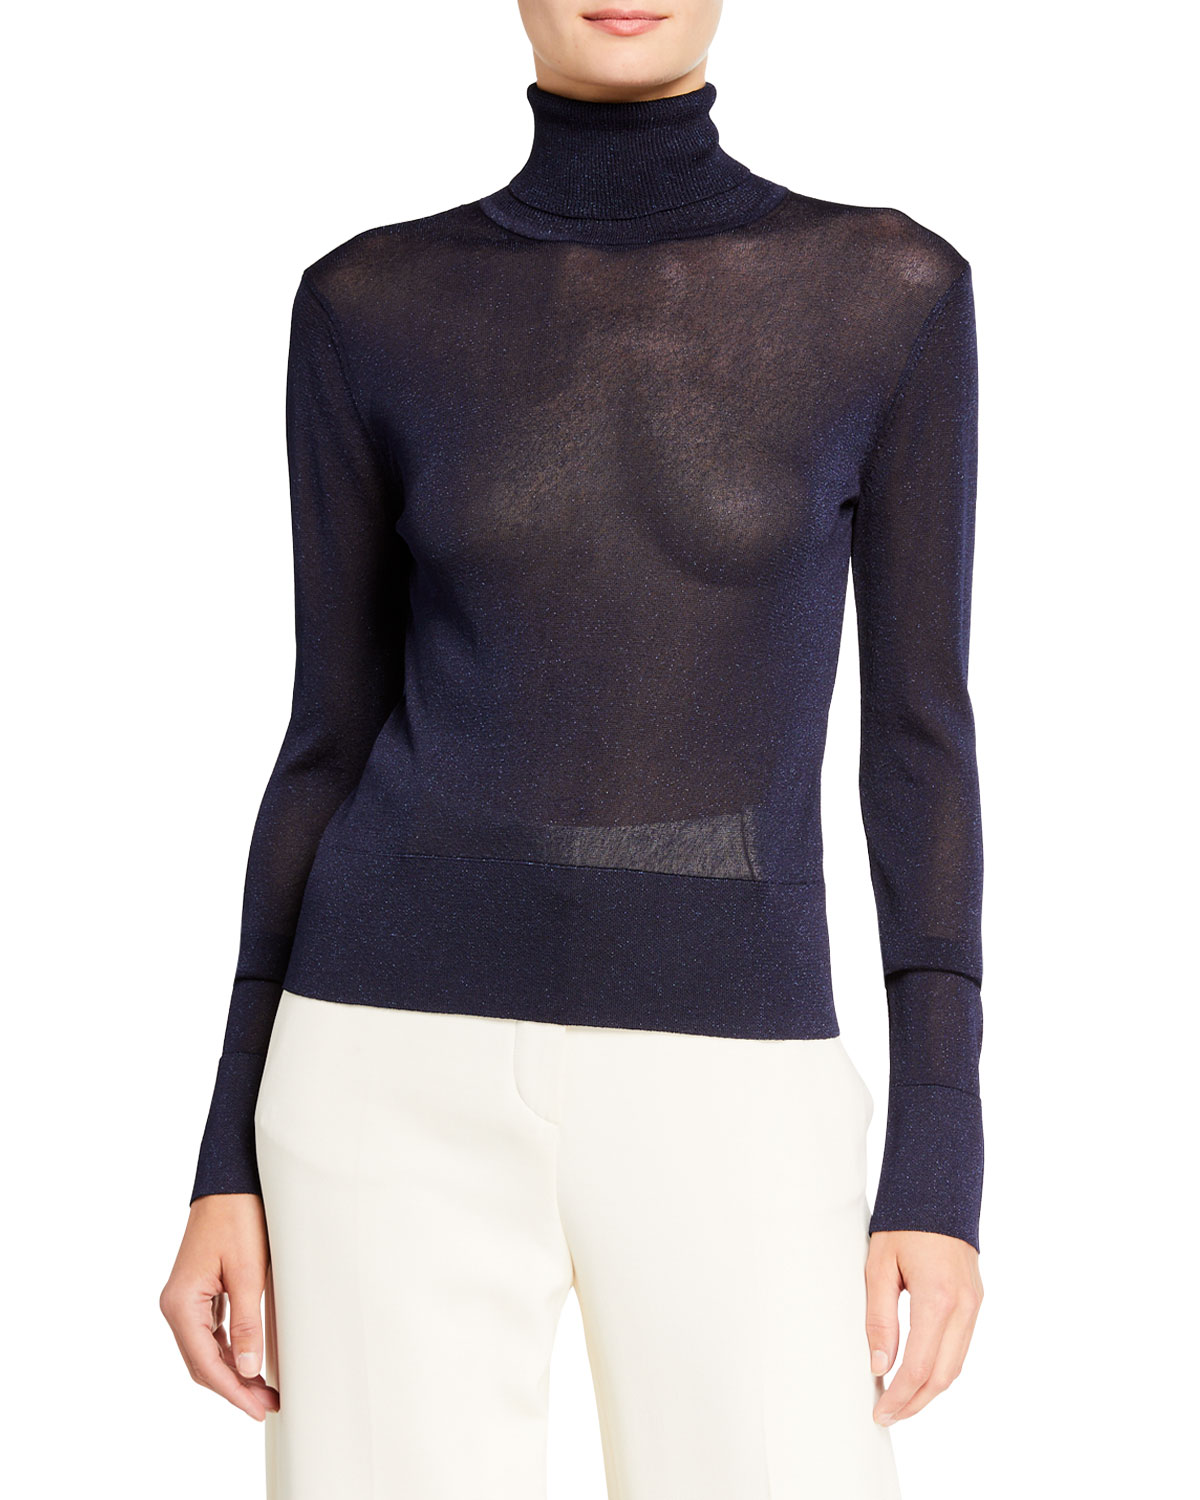 Altuzarra Lexia Shimmer-Knit Turtleneck Sweater